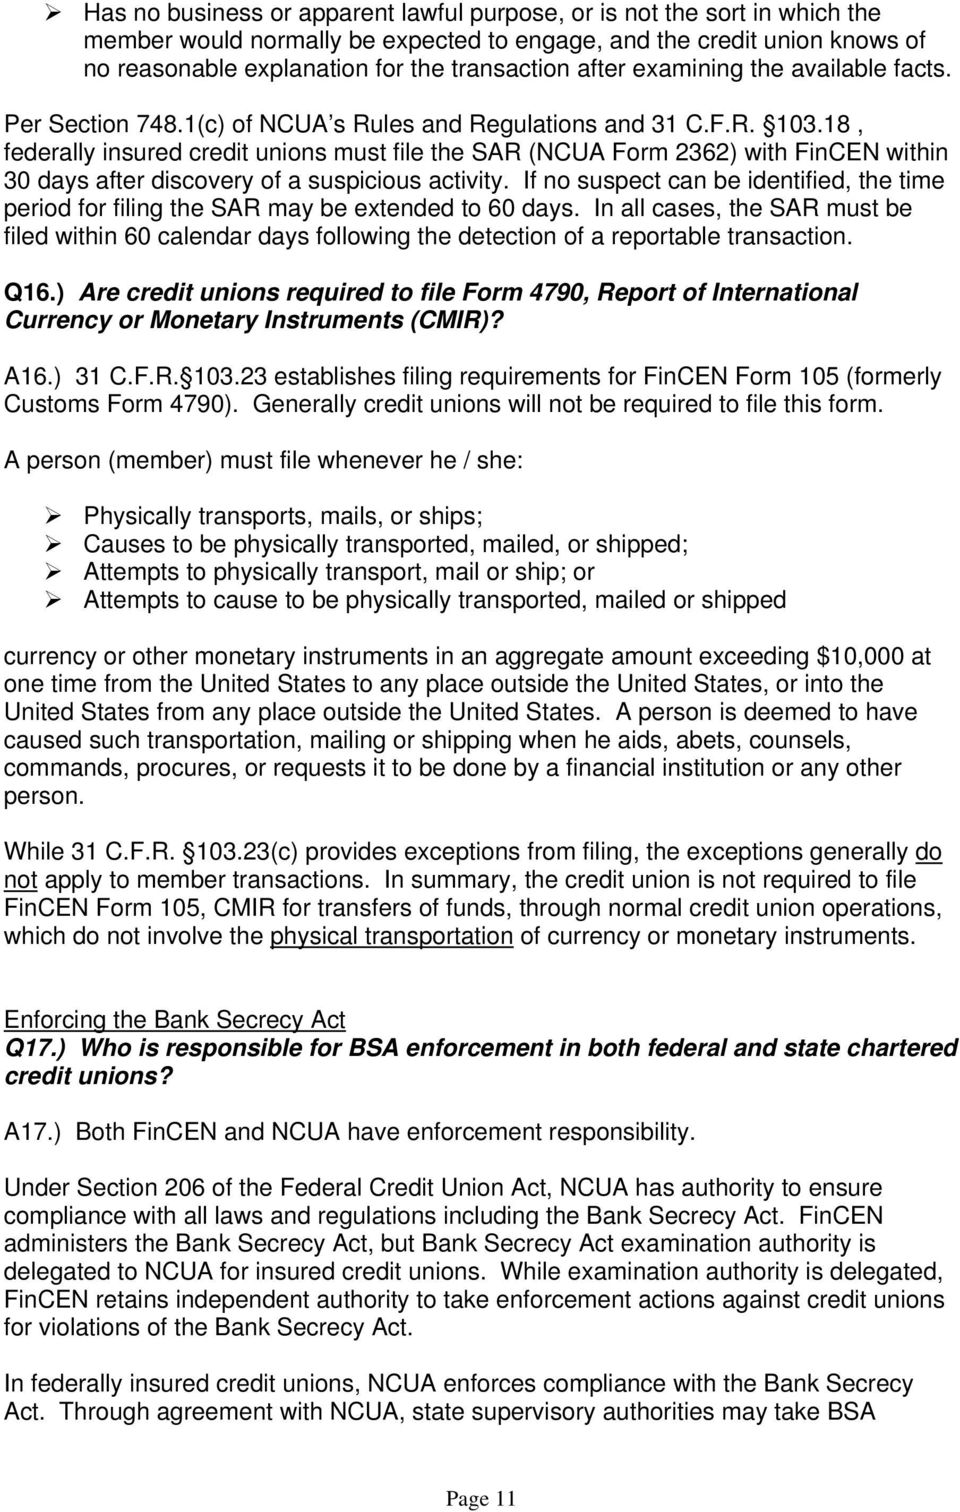 18, federally insured credit unions must file the SAR (NCUA Form 2362) with FinCEN within 30 days after discovery of a suspicious activity.